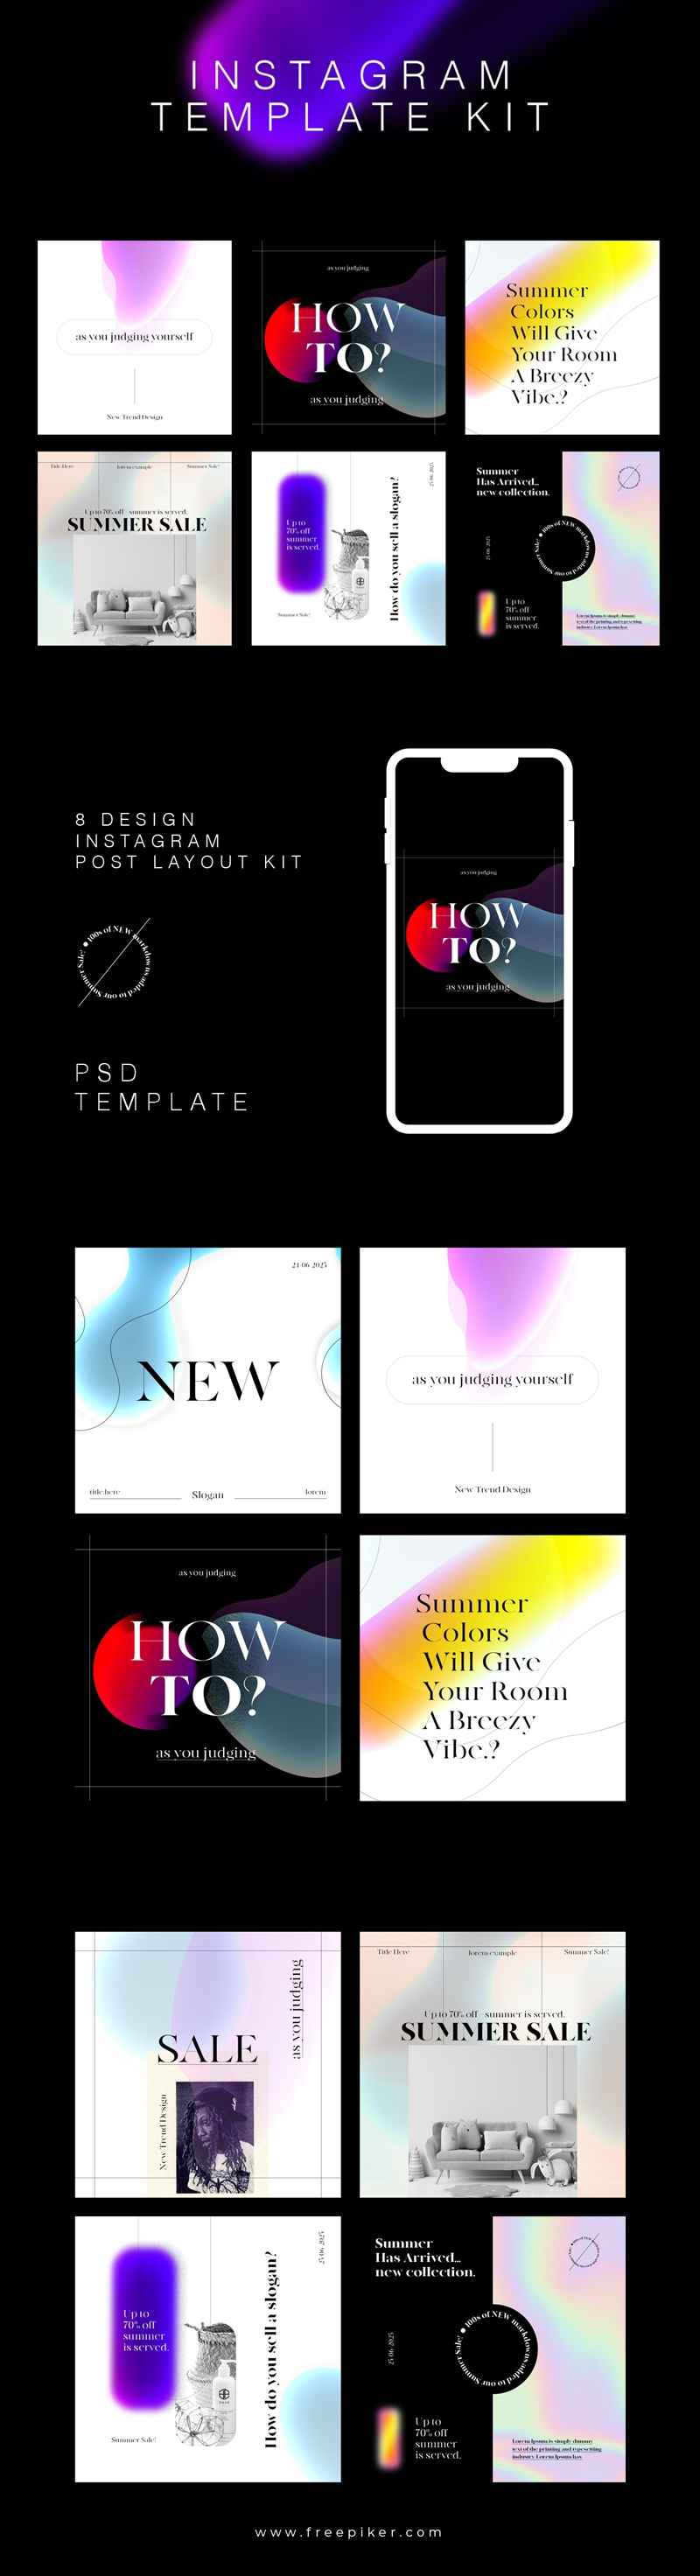 Instagram Booster Posting Kit Banners